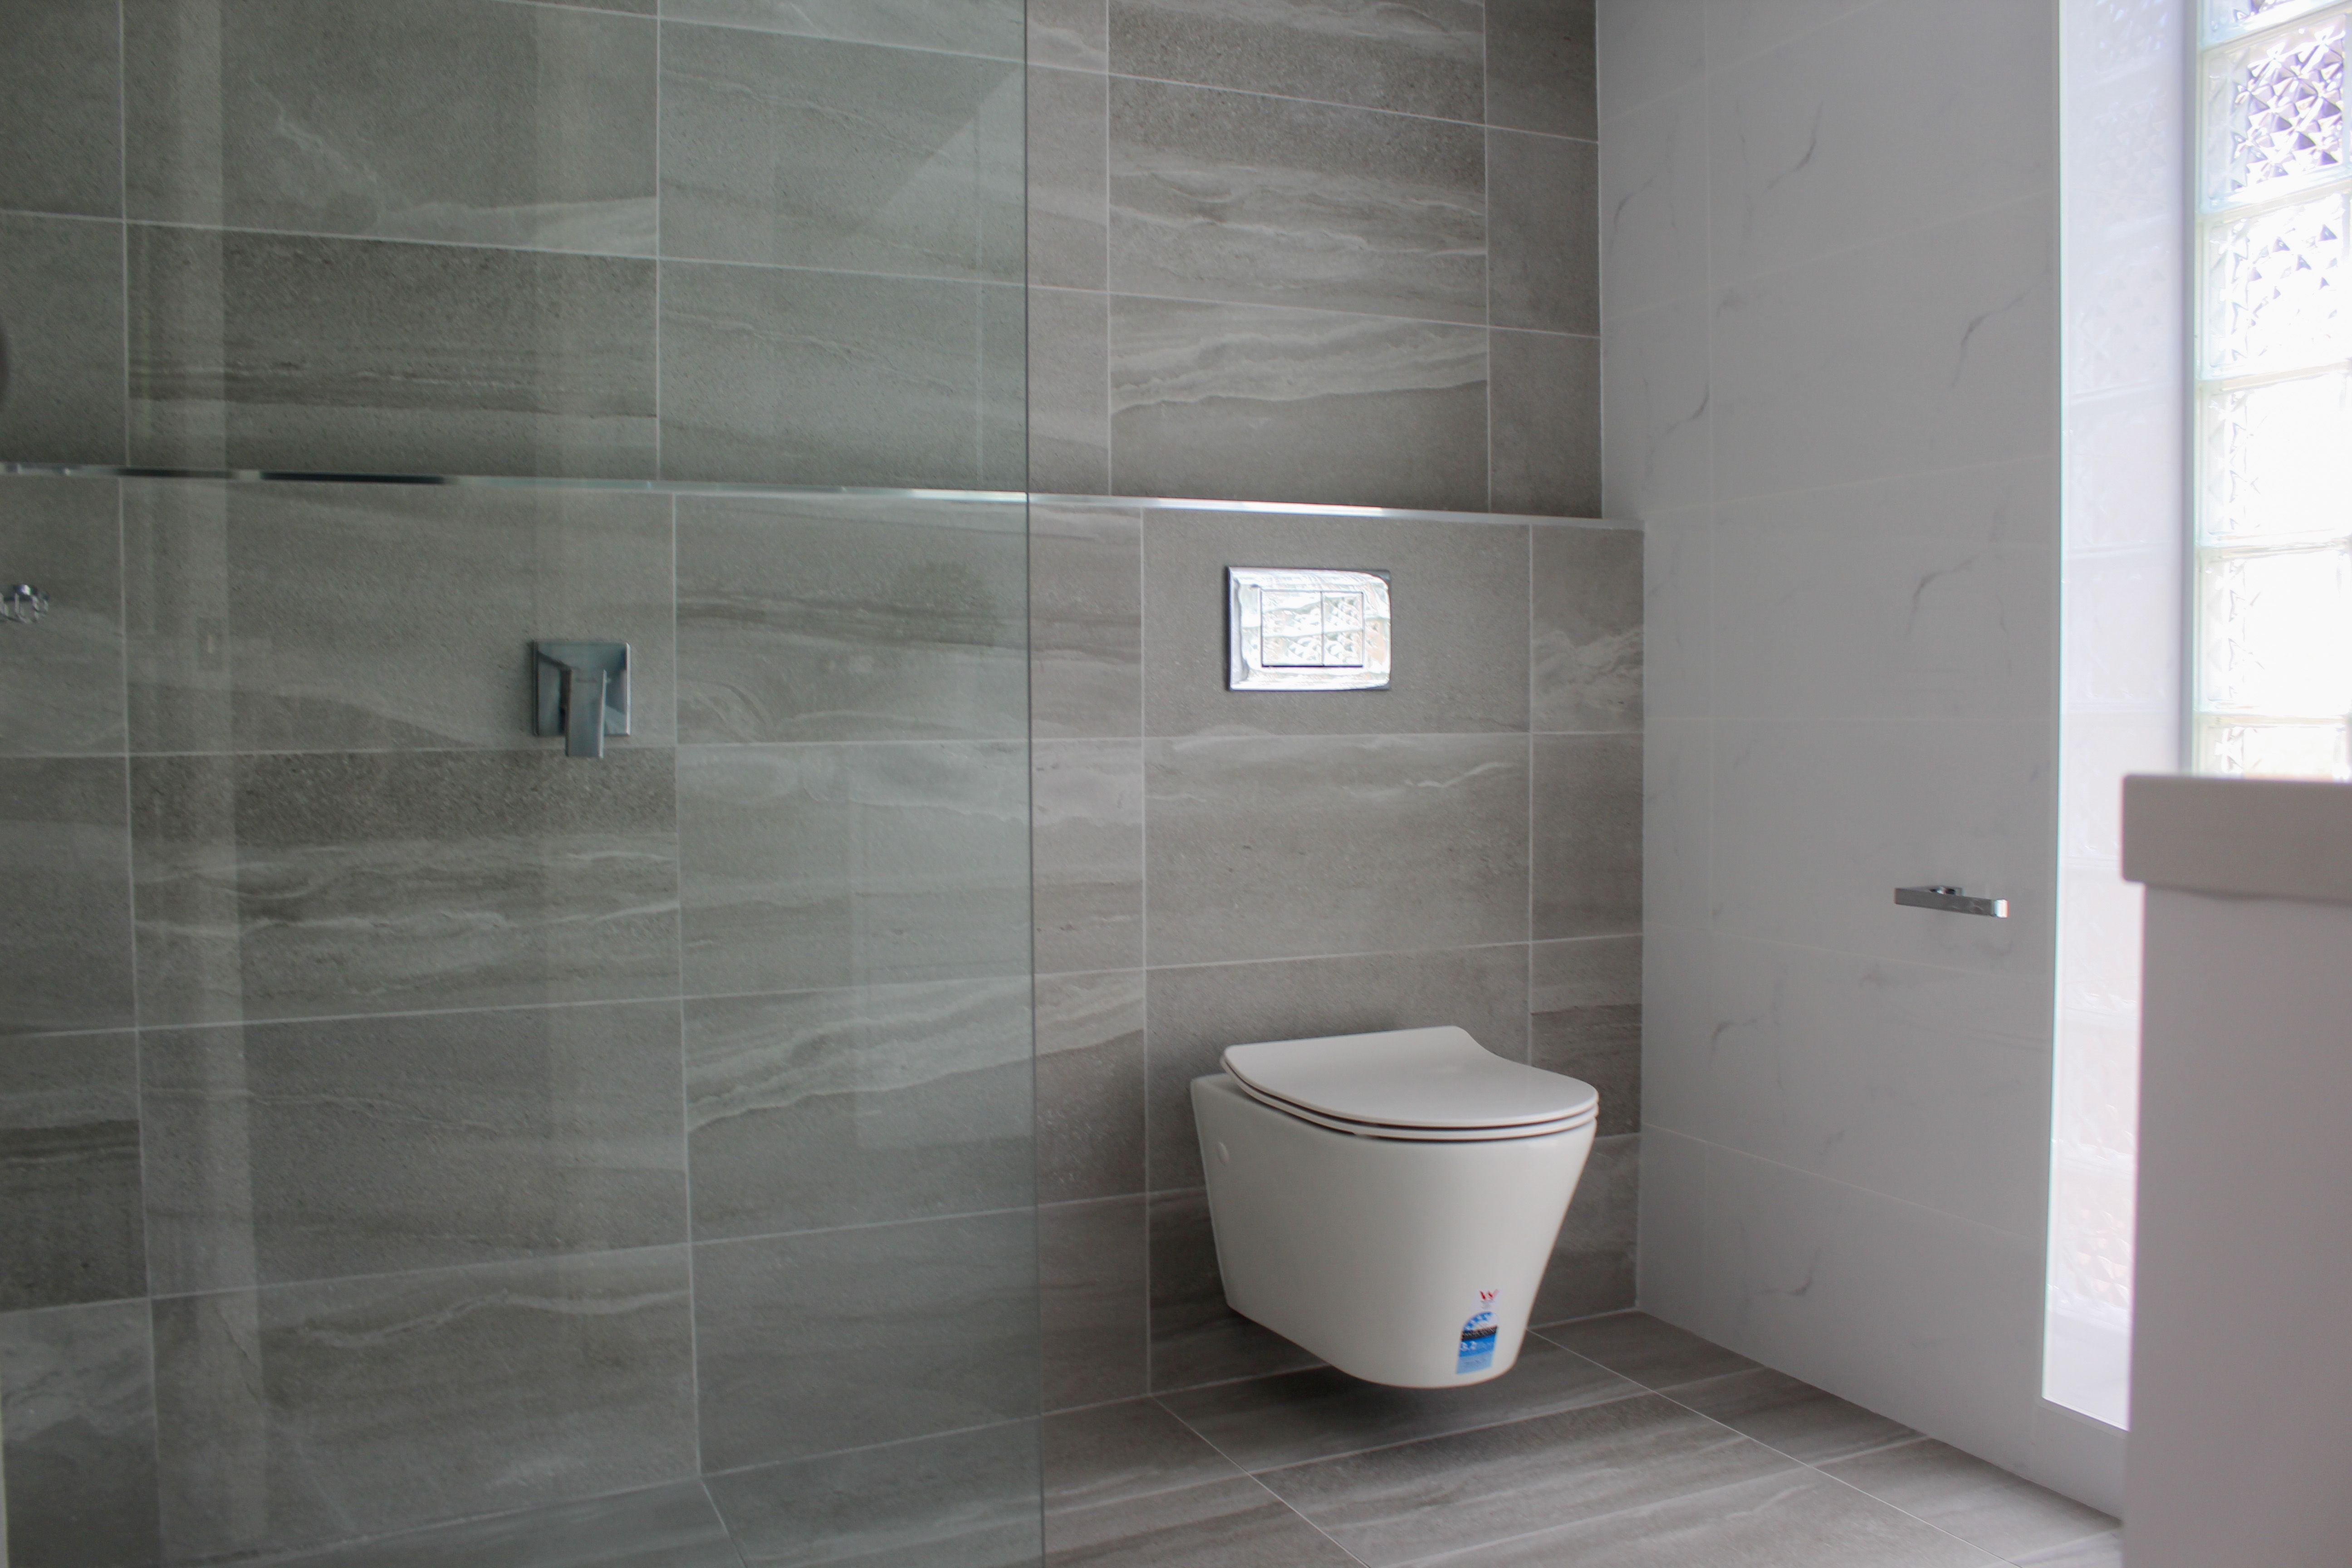 Small Ensuite Renovation Ensuite Renovation Grey Feature Wall Walk In Shower Bathroom Renovations Beautiful Bathroom Renovations Small Bathroom Renovations